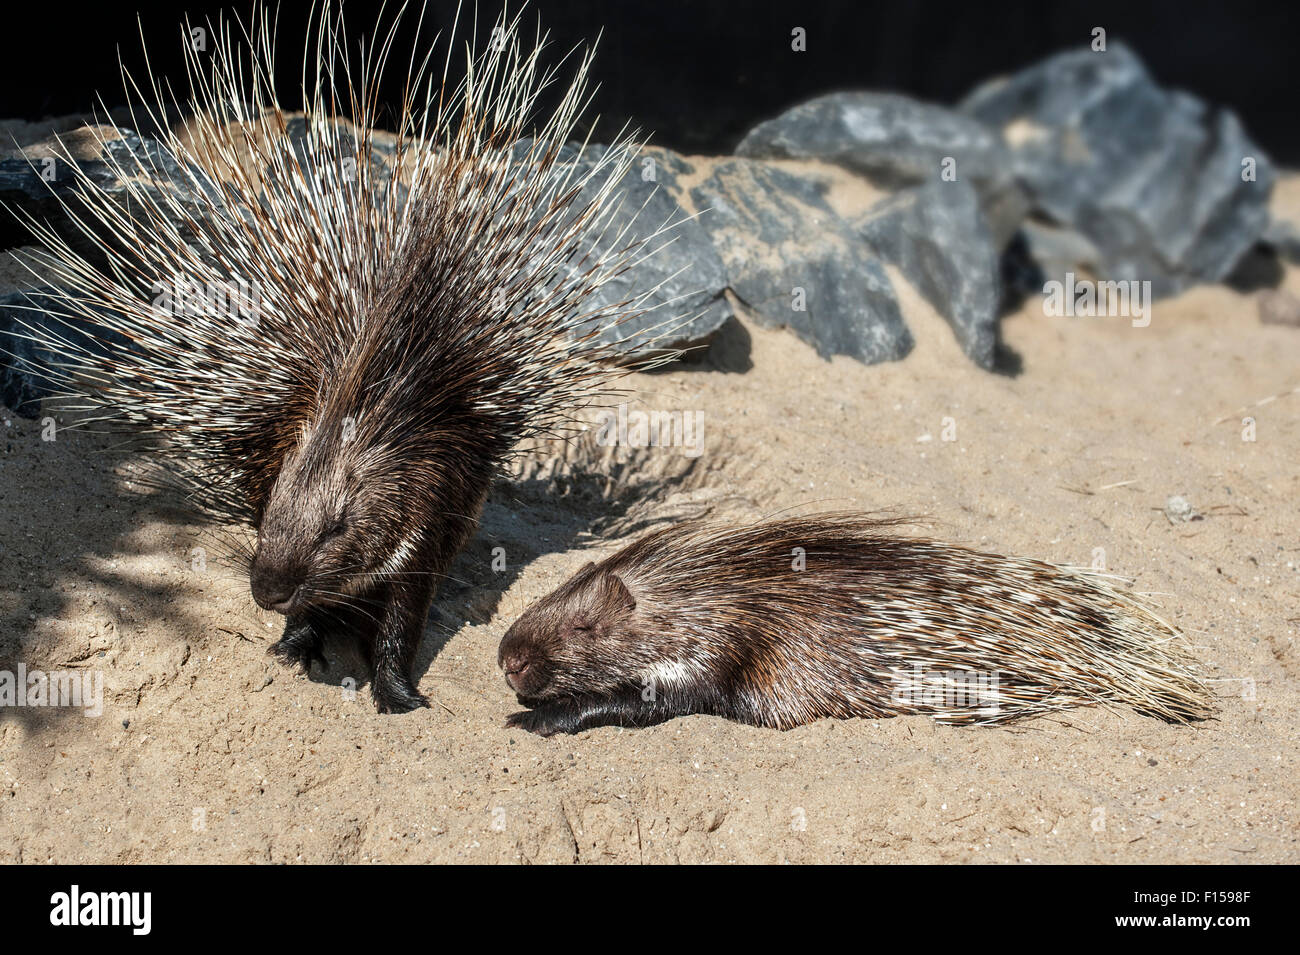 Two Indian Crested Porcupines / Indian Porcupine (Hystrix indica), native to southern Asia and the Middle East - Stock Image